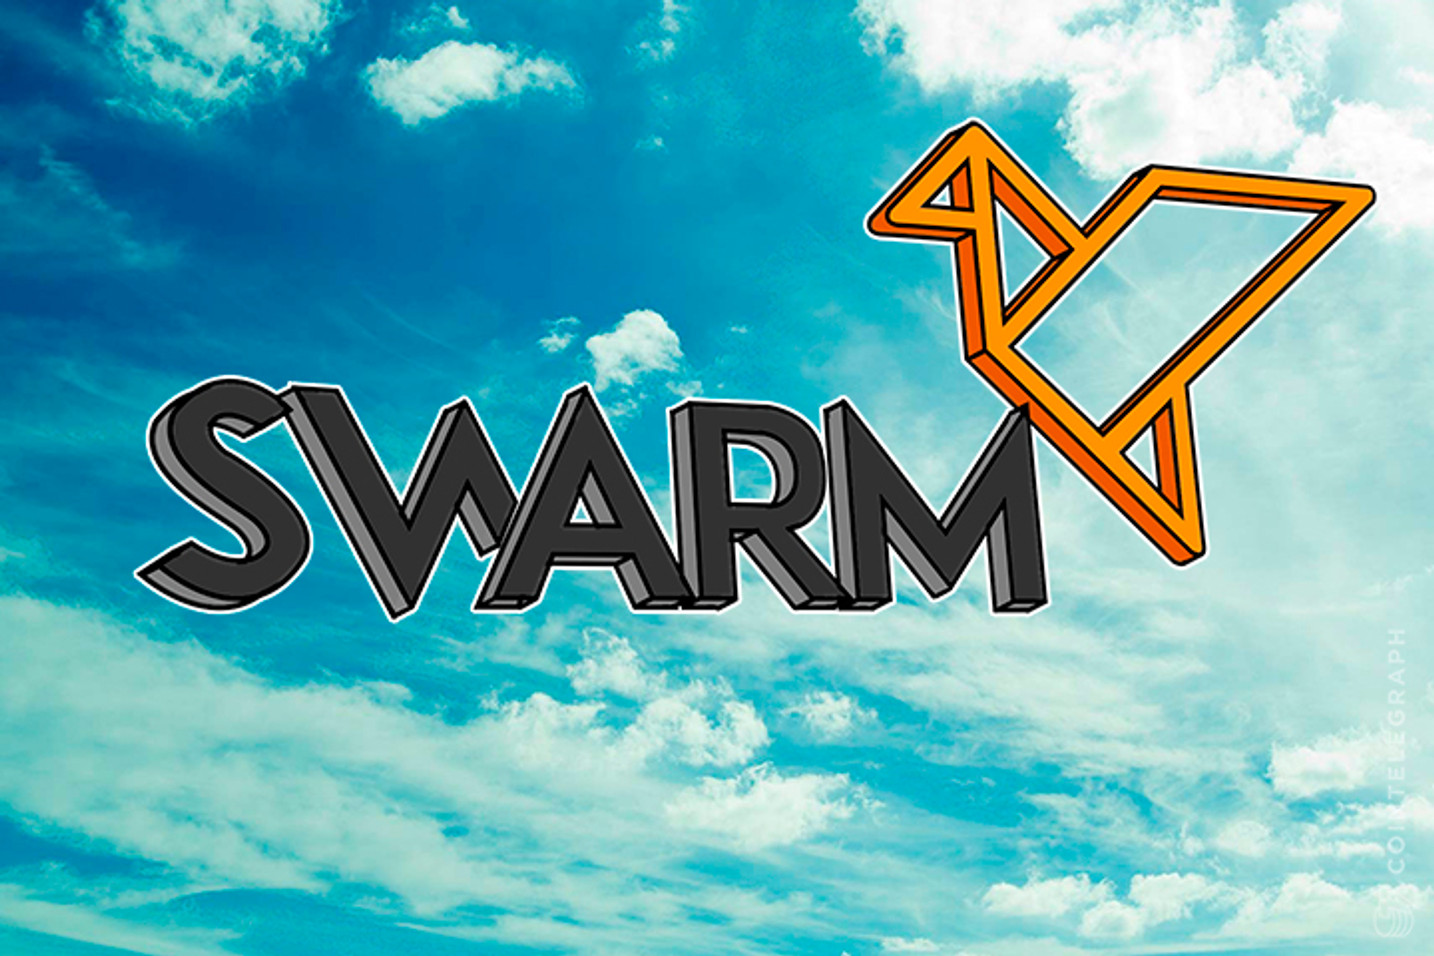 Swarm Fund Launches Compliance-Oriented Token Offering Tailored to Evolving Regulatory Environment